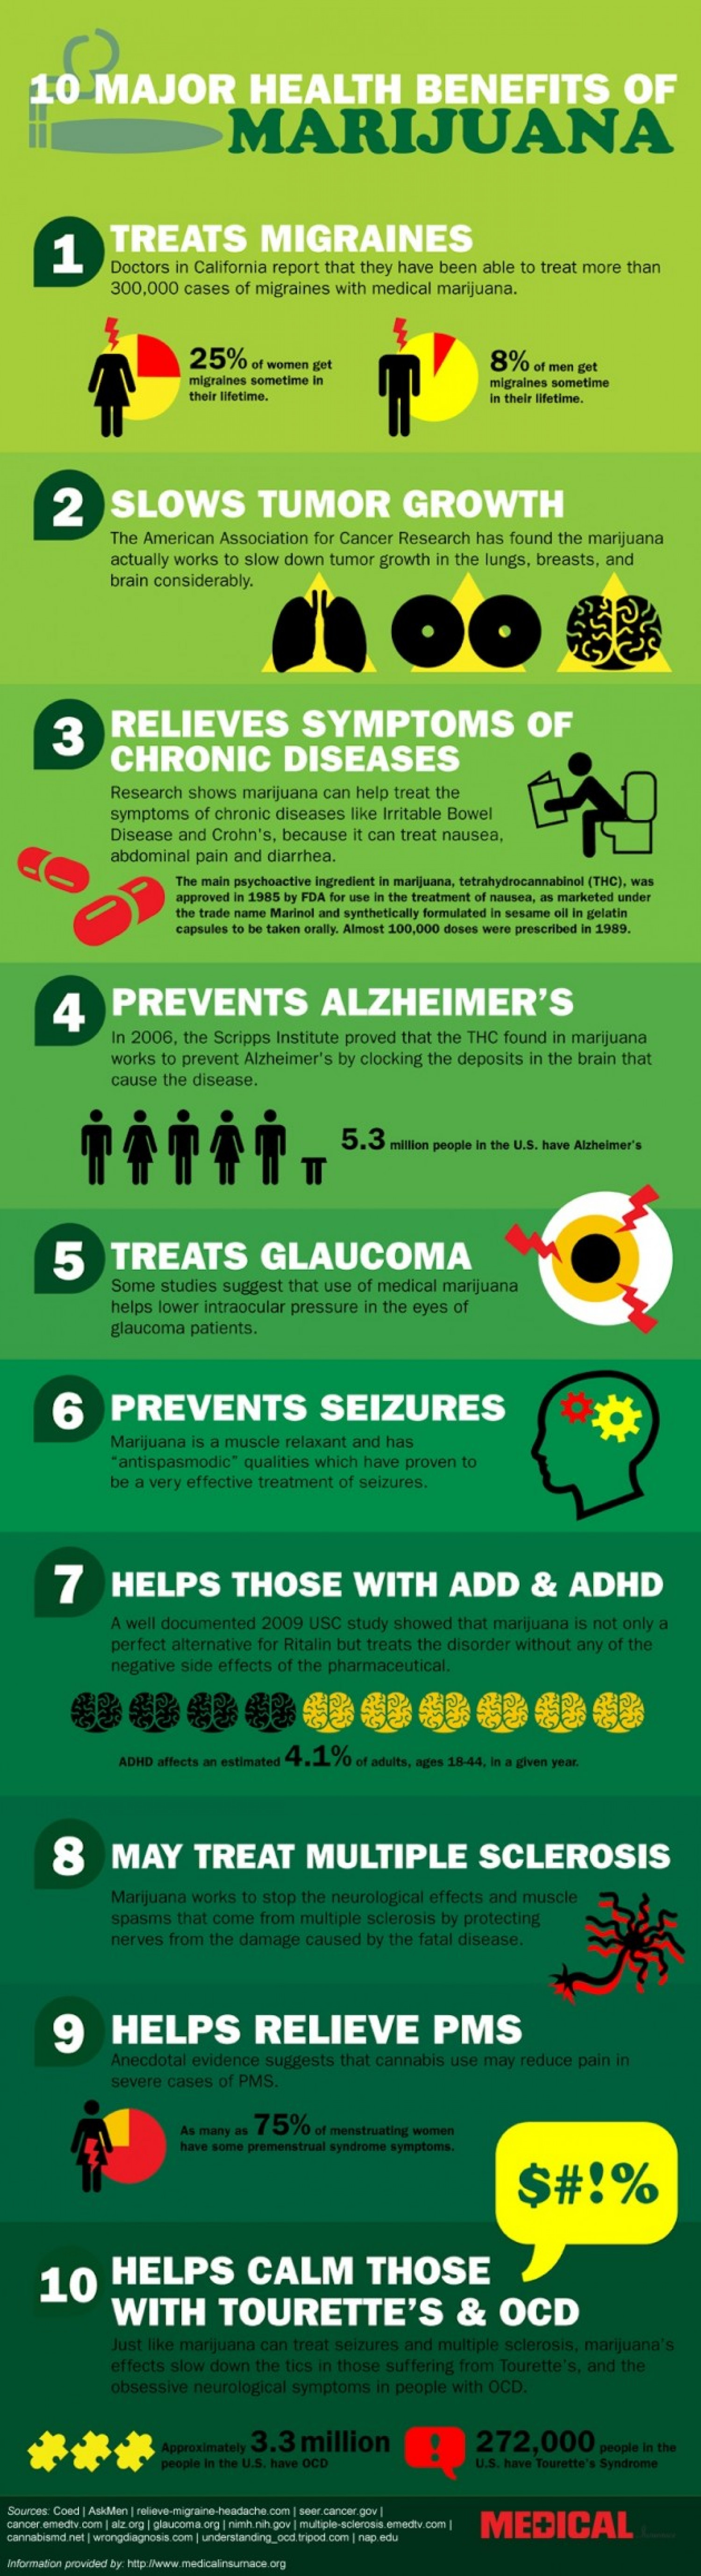 10 Major Health Benefits of Marijuana Infographic